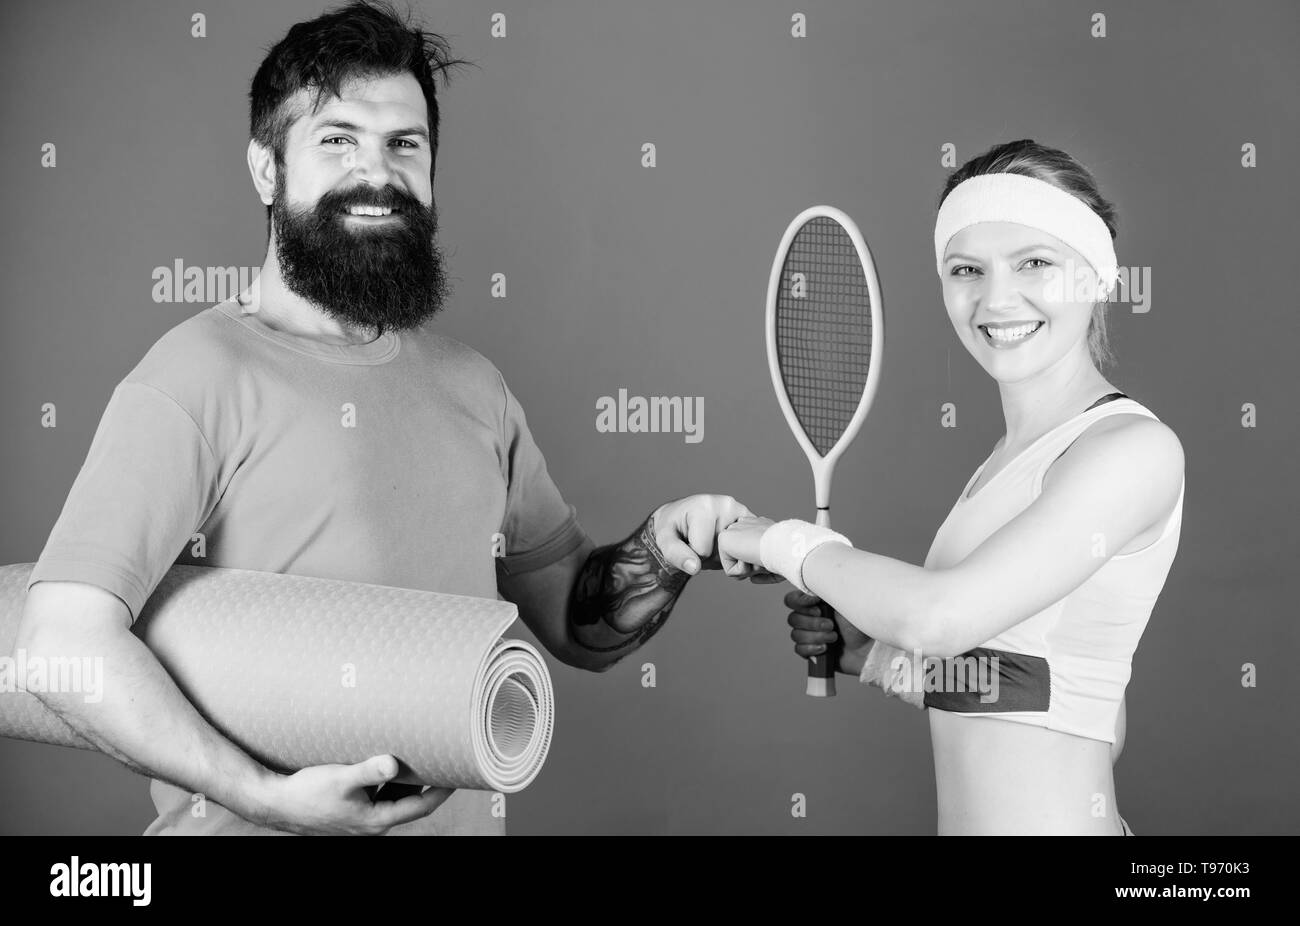 Sport coach. Athletic Success. Sporty couple training with coach. Strong muscles and body. Sport equipment. Happy woman and bearded man workout in gym. best coach ever. good coach brings great result. - Stock Image